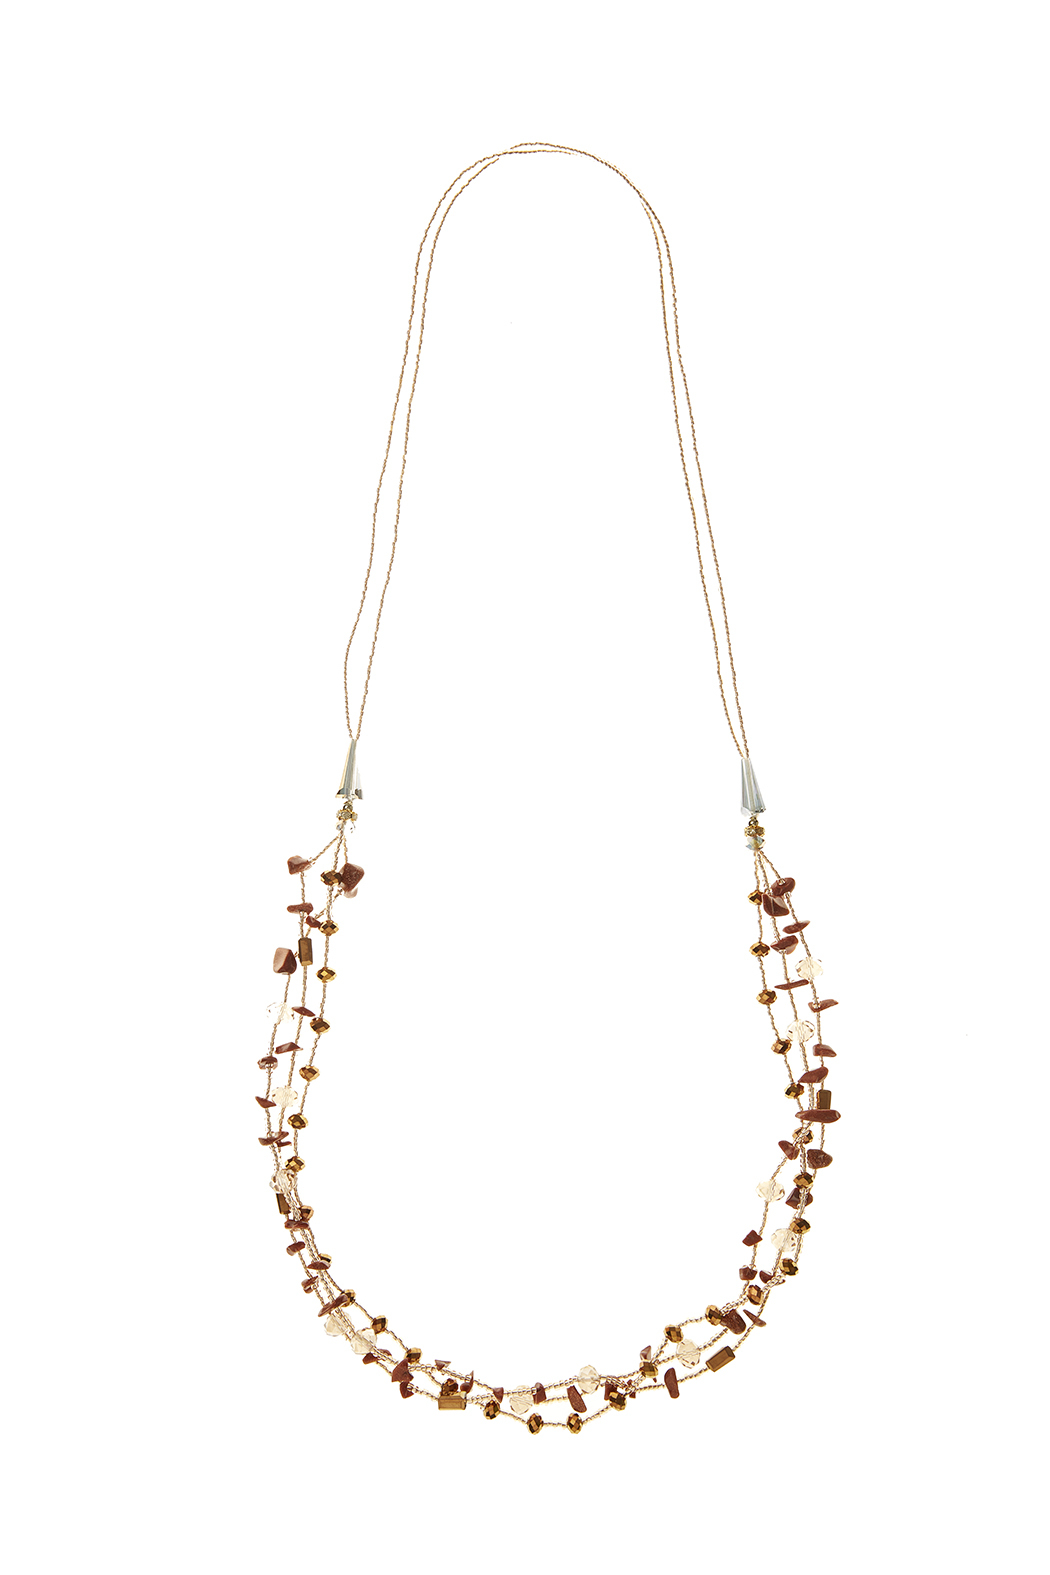 potissi multi layer necklace from new york city